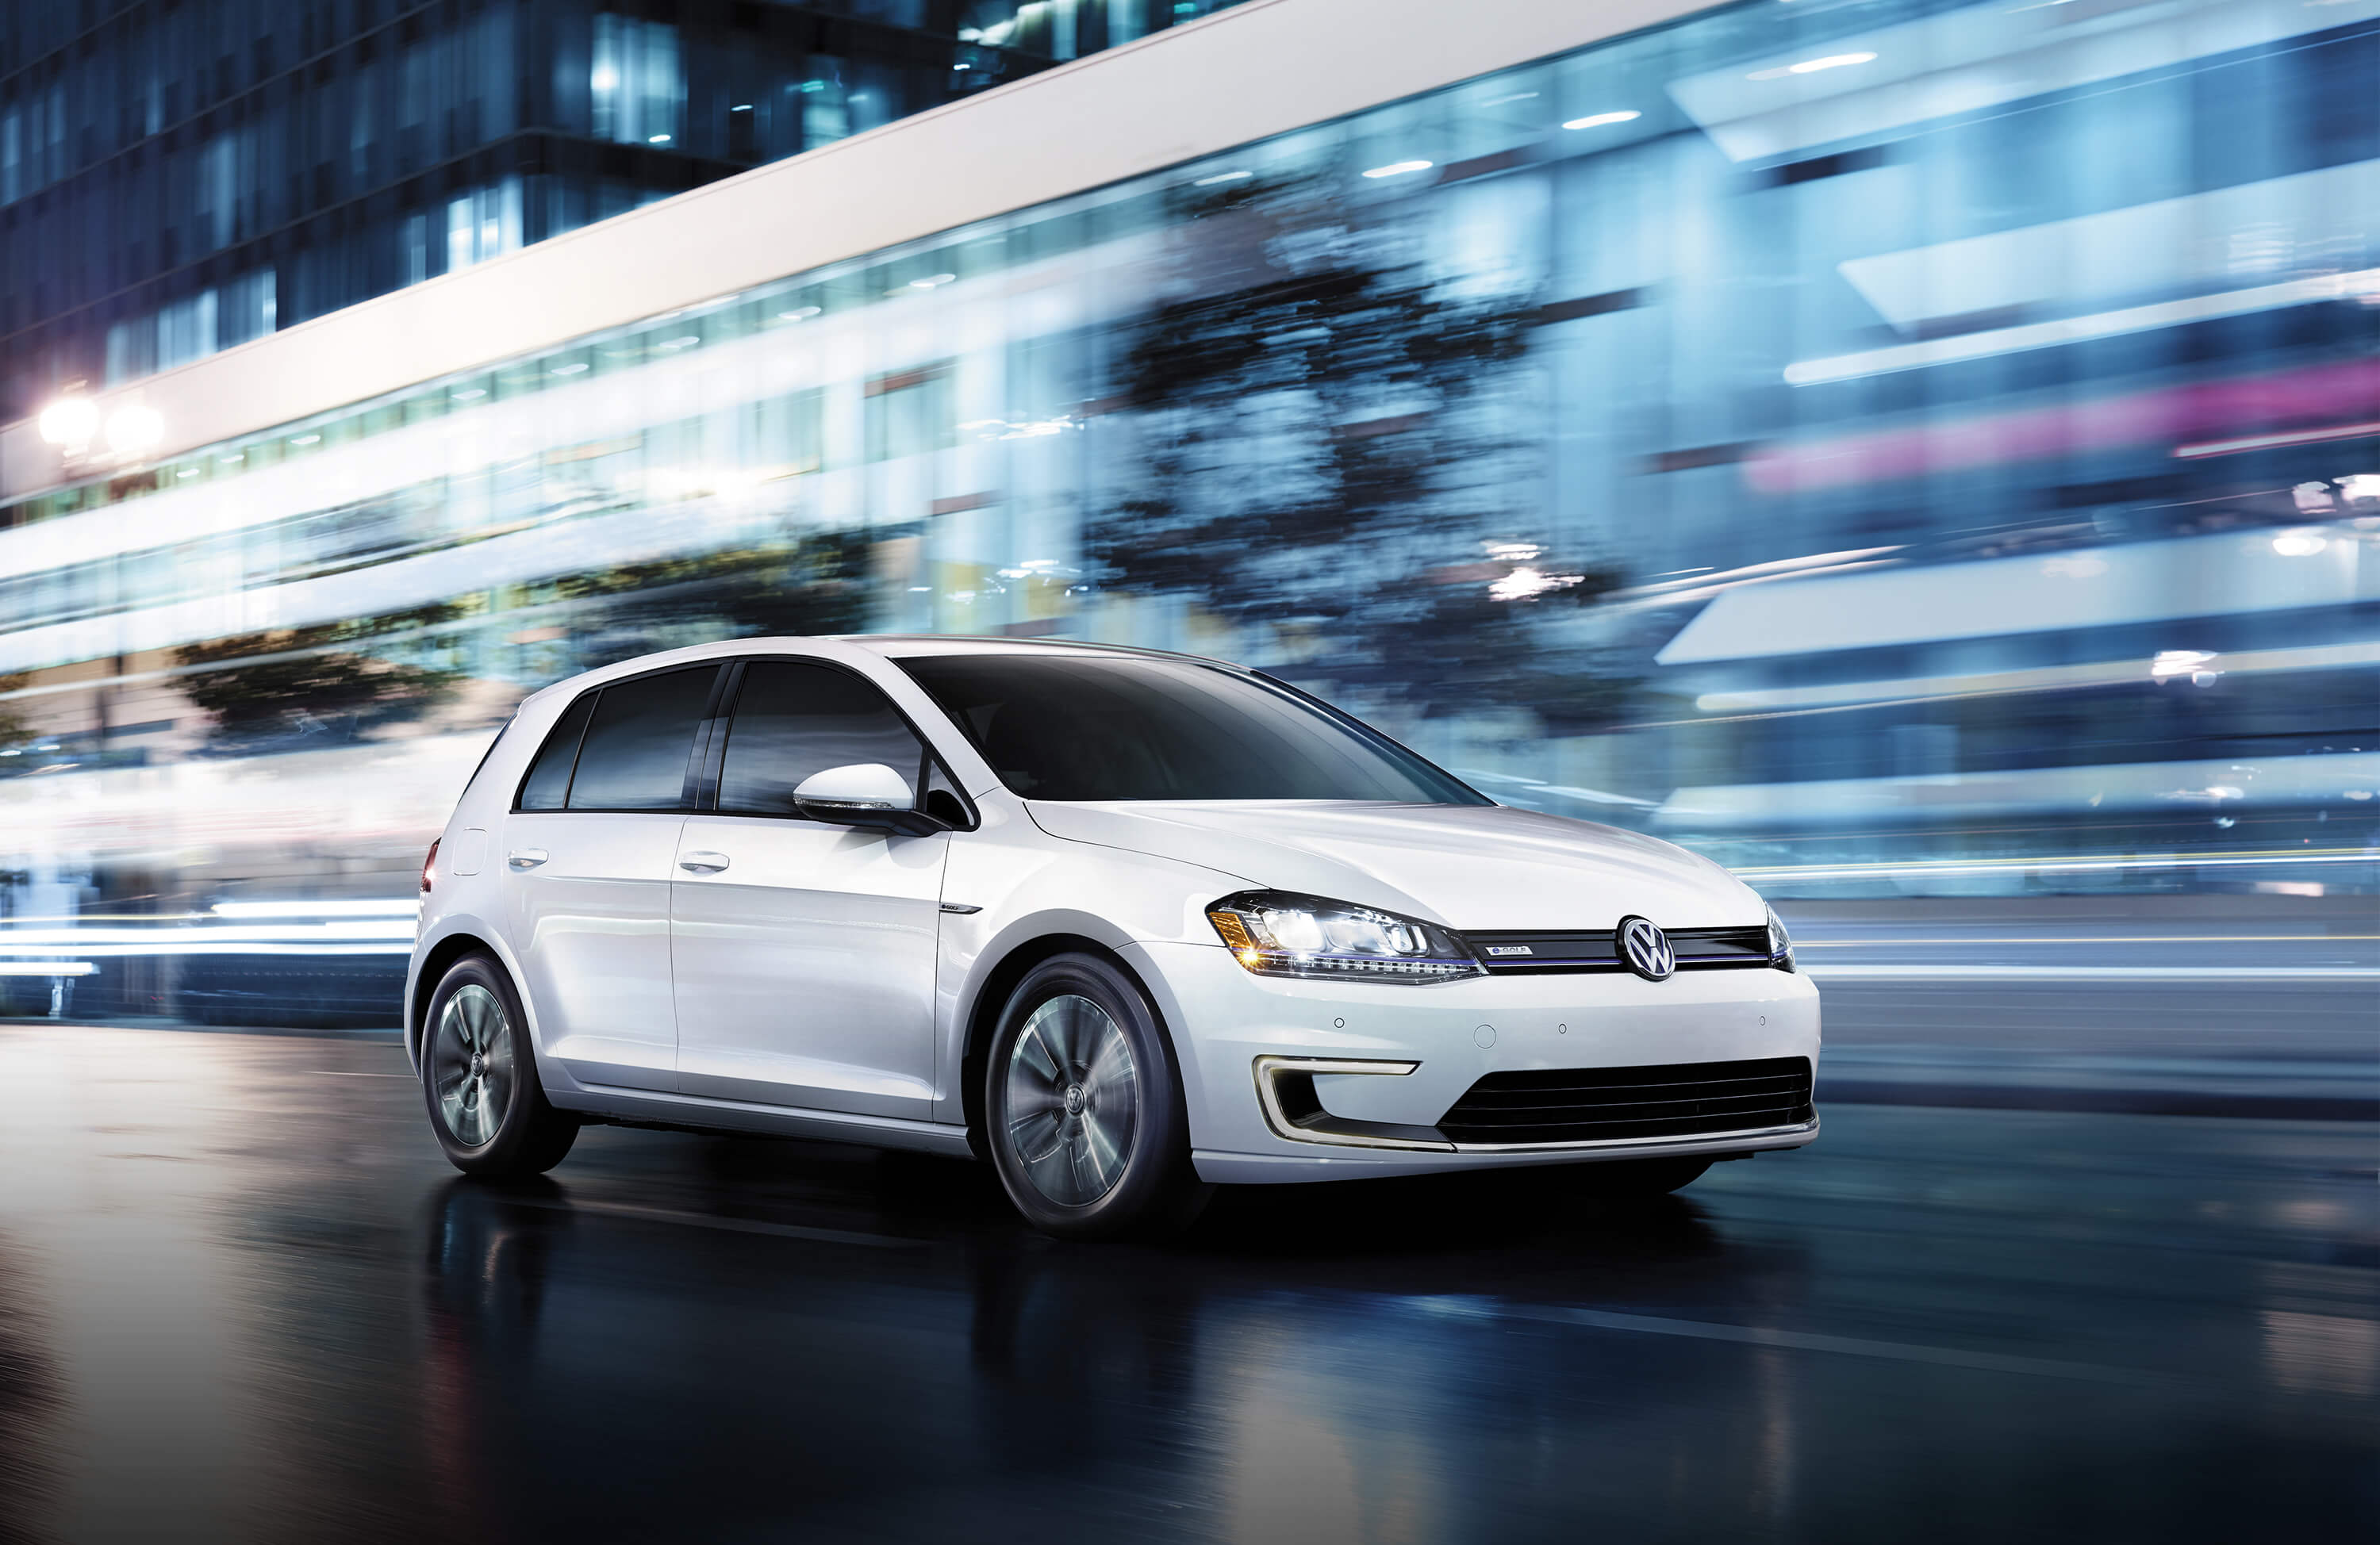 2016 Volkswagen E-golf #1